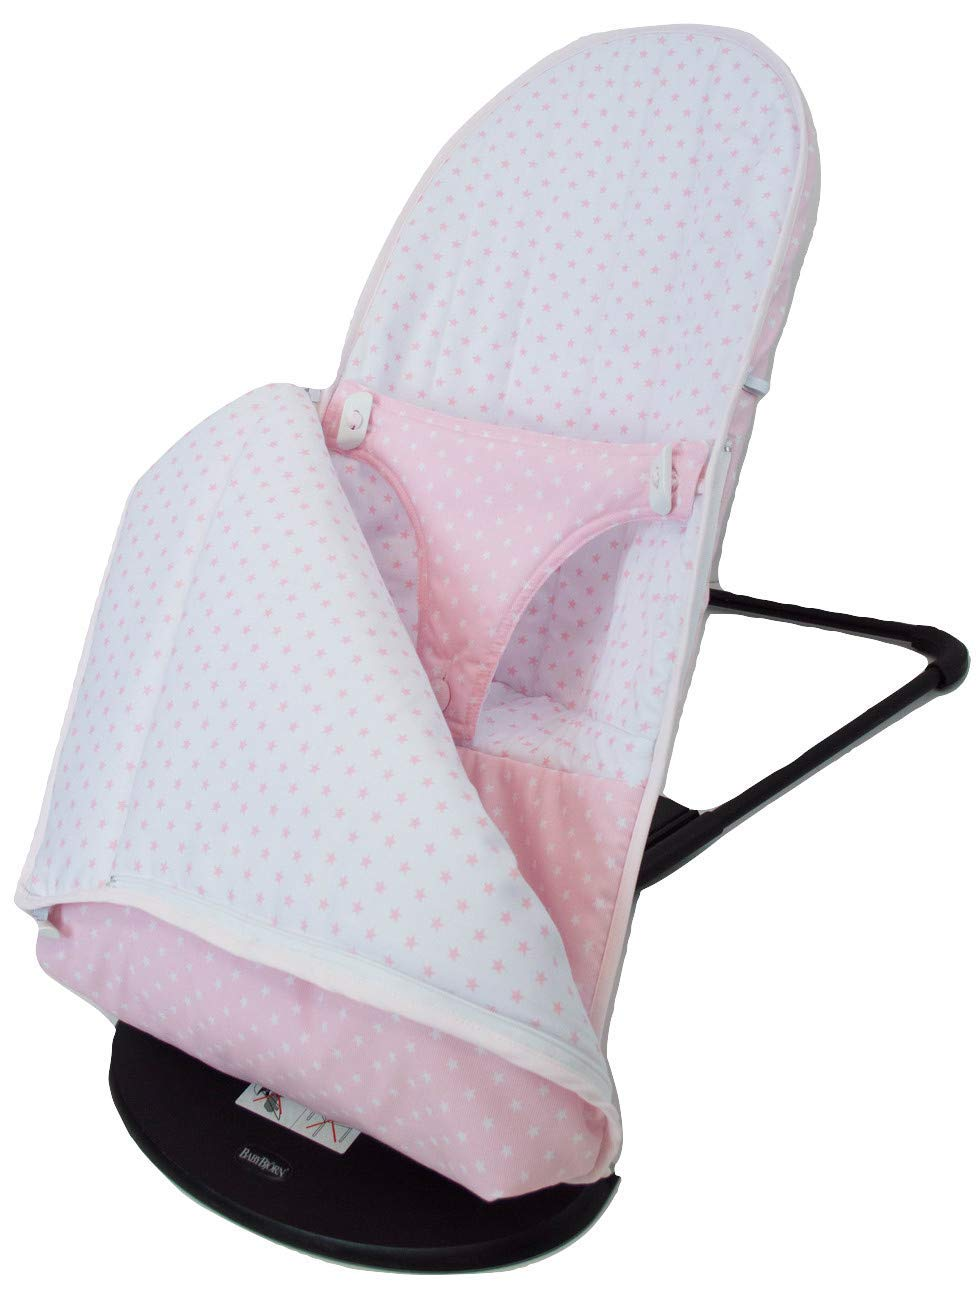 Baby Bouncer Cover and Footmuff for BabyBjörn Balance and Soft Personalized with Embroidered Name. Several Models Available (Stars Pink) Borda y más Upholstery for totally replacing the original Babybjörn baby bouncer upholstery. It consists of FOOTMUFF and COVER. Compatible with Babybjörn Balance and Babybjörn Balance Soft. Made in natural soft and breathable pique, without chemical substances perfect for your baby as it reduces your baby's skin irritation or reaction. With our footmuff changeable into cover you will keep your baby war in the coldest days at the same time you provide your baby bouncer a new image. You only need to fit together the cover and the upholstery by the zippers and velcro system. The footmuff adjustable to 3 different positions. You won't need to worry about the blanket again; your baby will be able to play and sleep without being cold. Design: Made in pink pique with white stars combined with white pique and pink stars. 100% made in Spain with the best finishes and qualities. It can be easily removed and wash in the washing machine, programmes lower than 30 degrees and using organic or neutral soap. 2